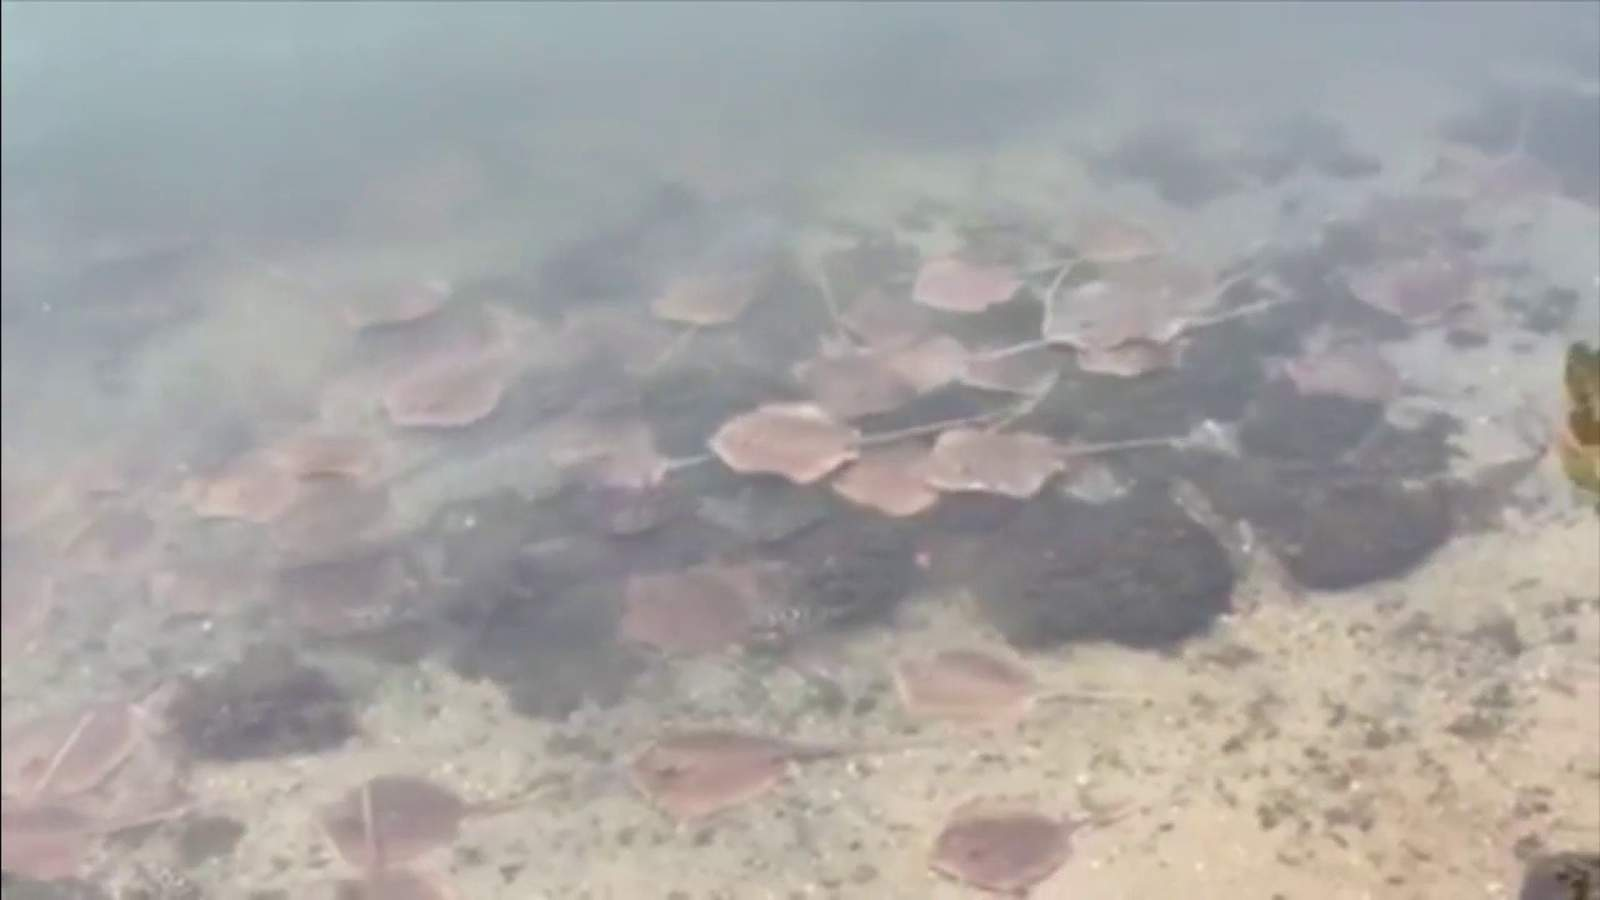 Stingrays desperate for oxygen part of critical tipping point at Biscayne Bay